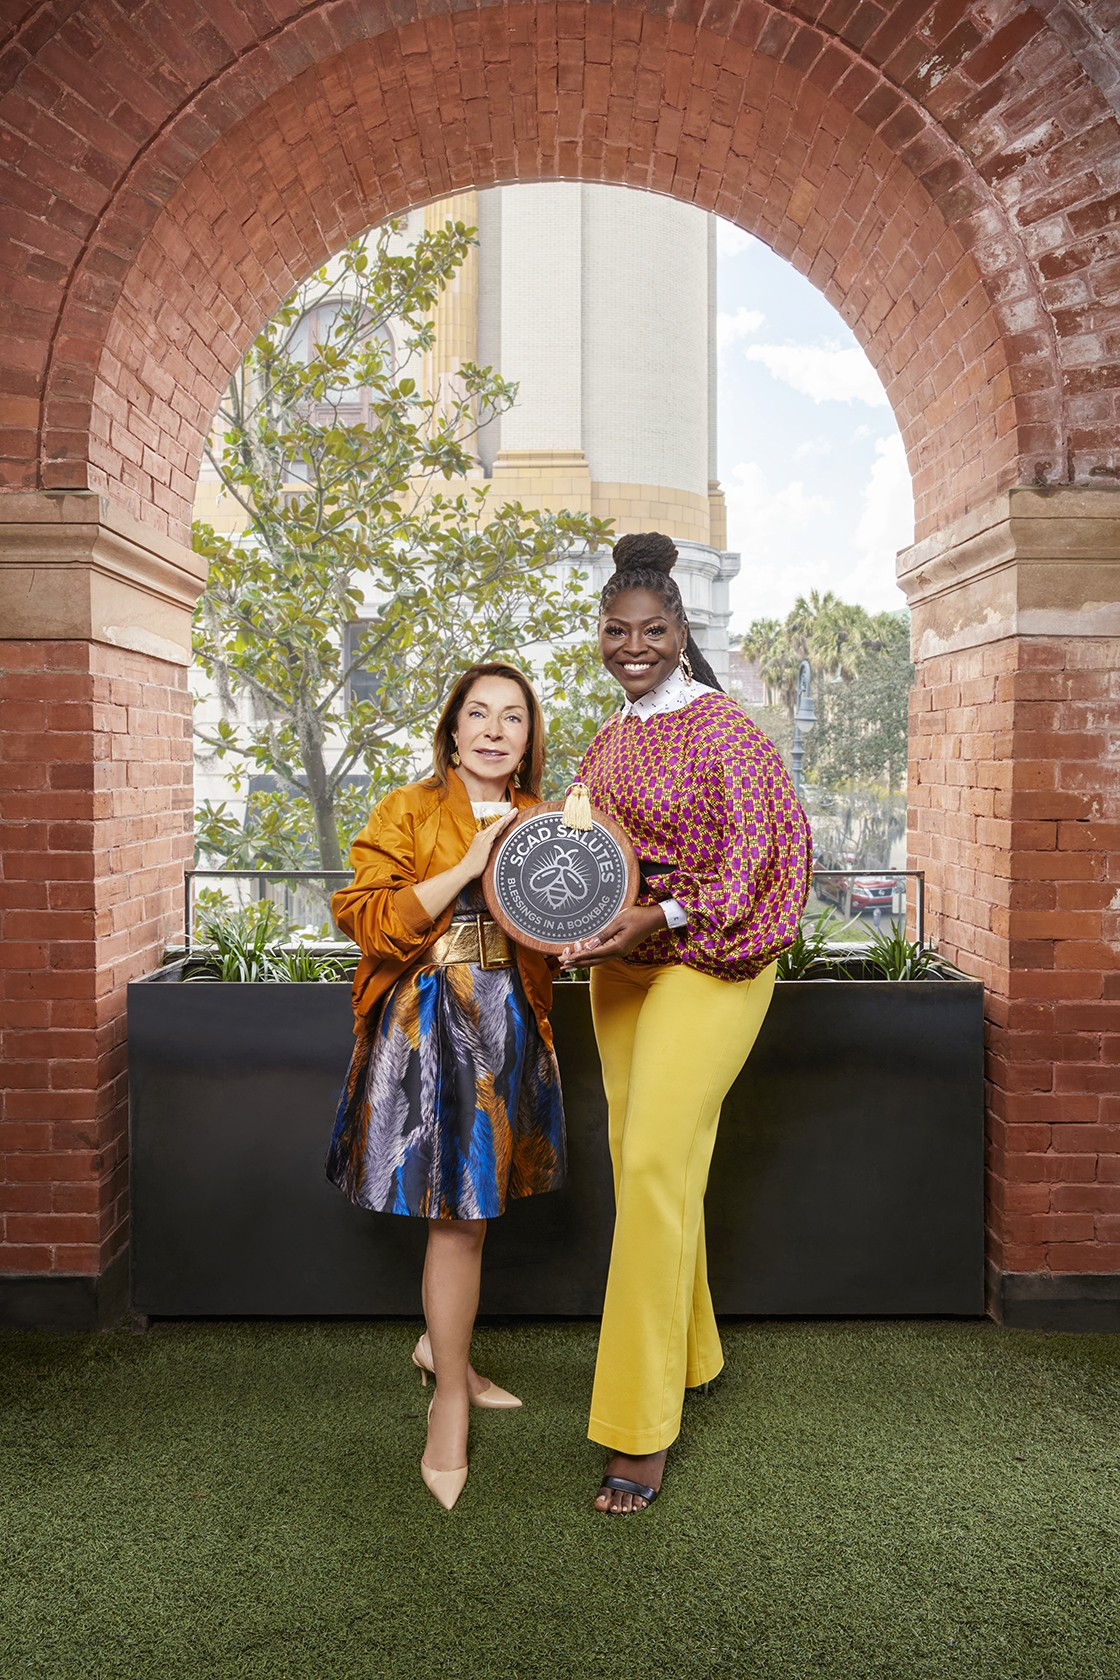 The SCAD Salutes award is given for creativity, kindness, grit, and goodness